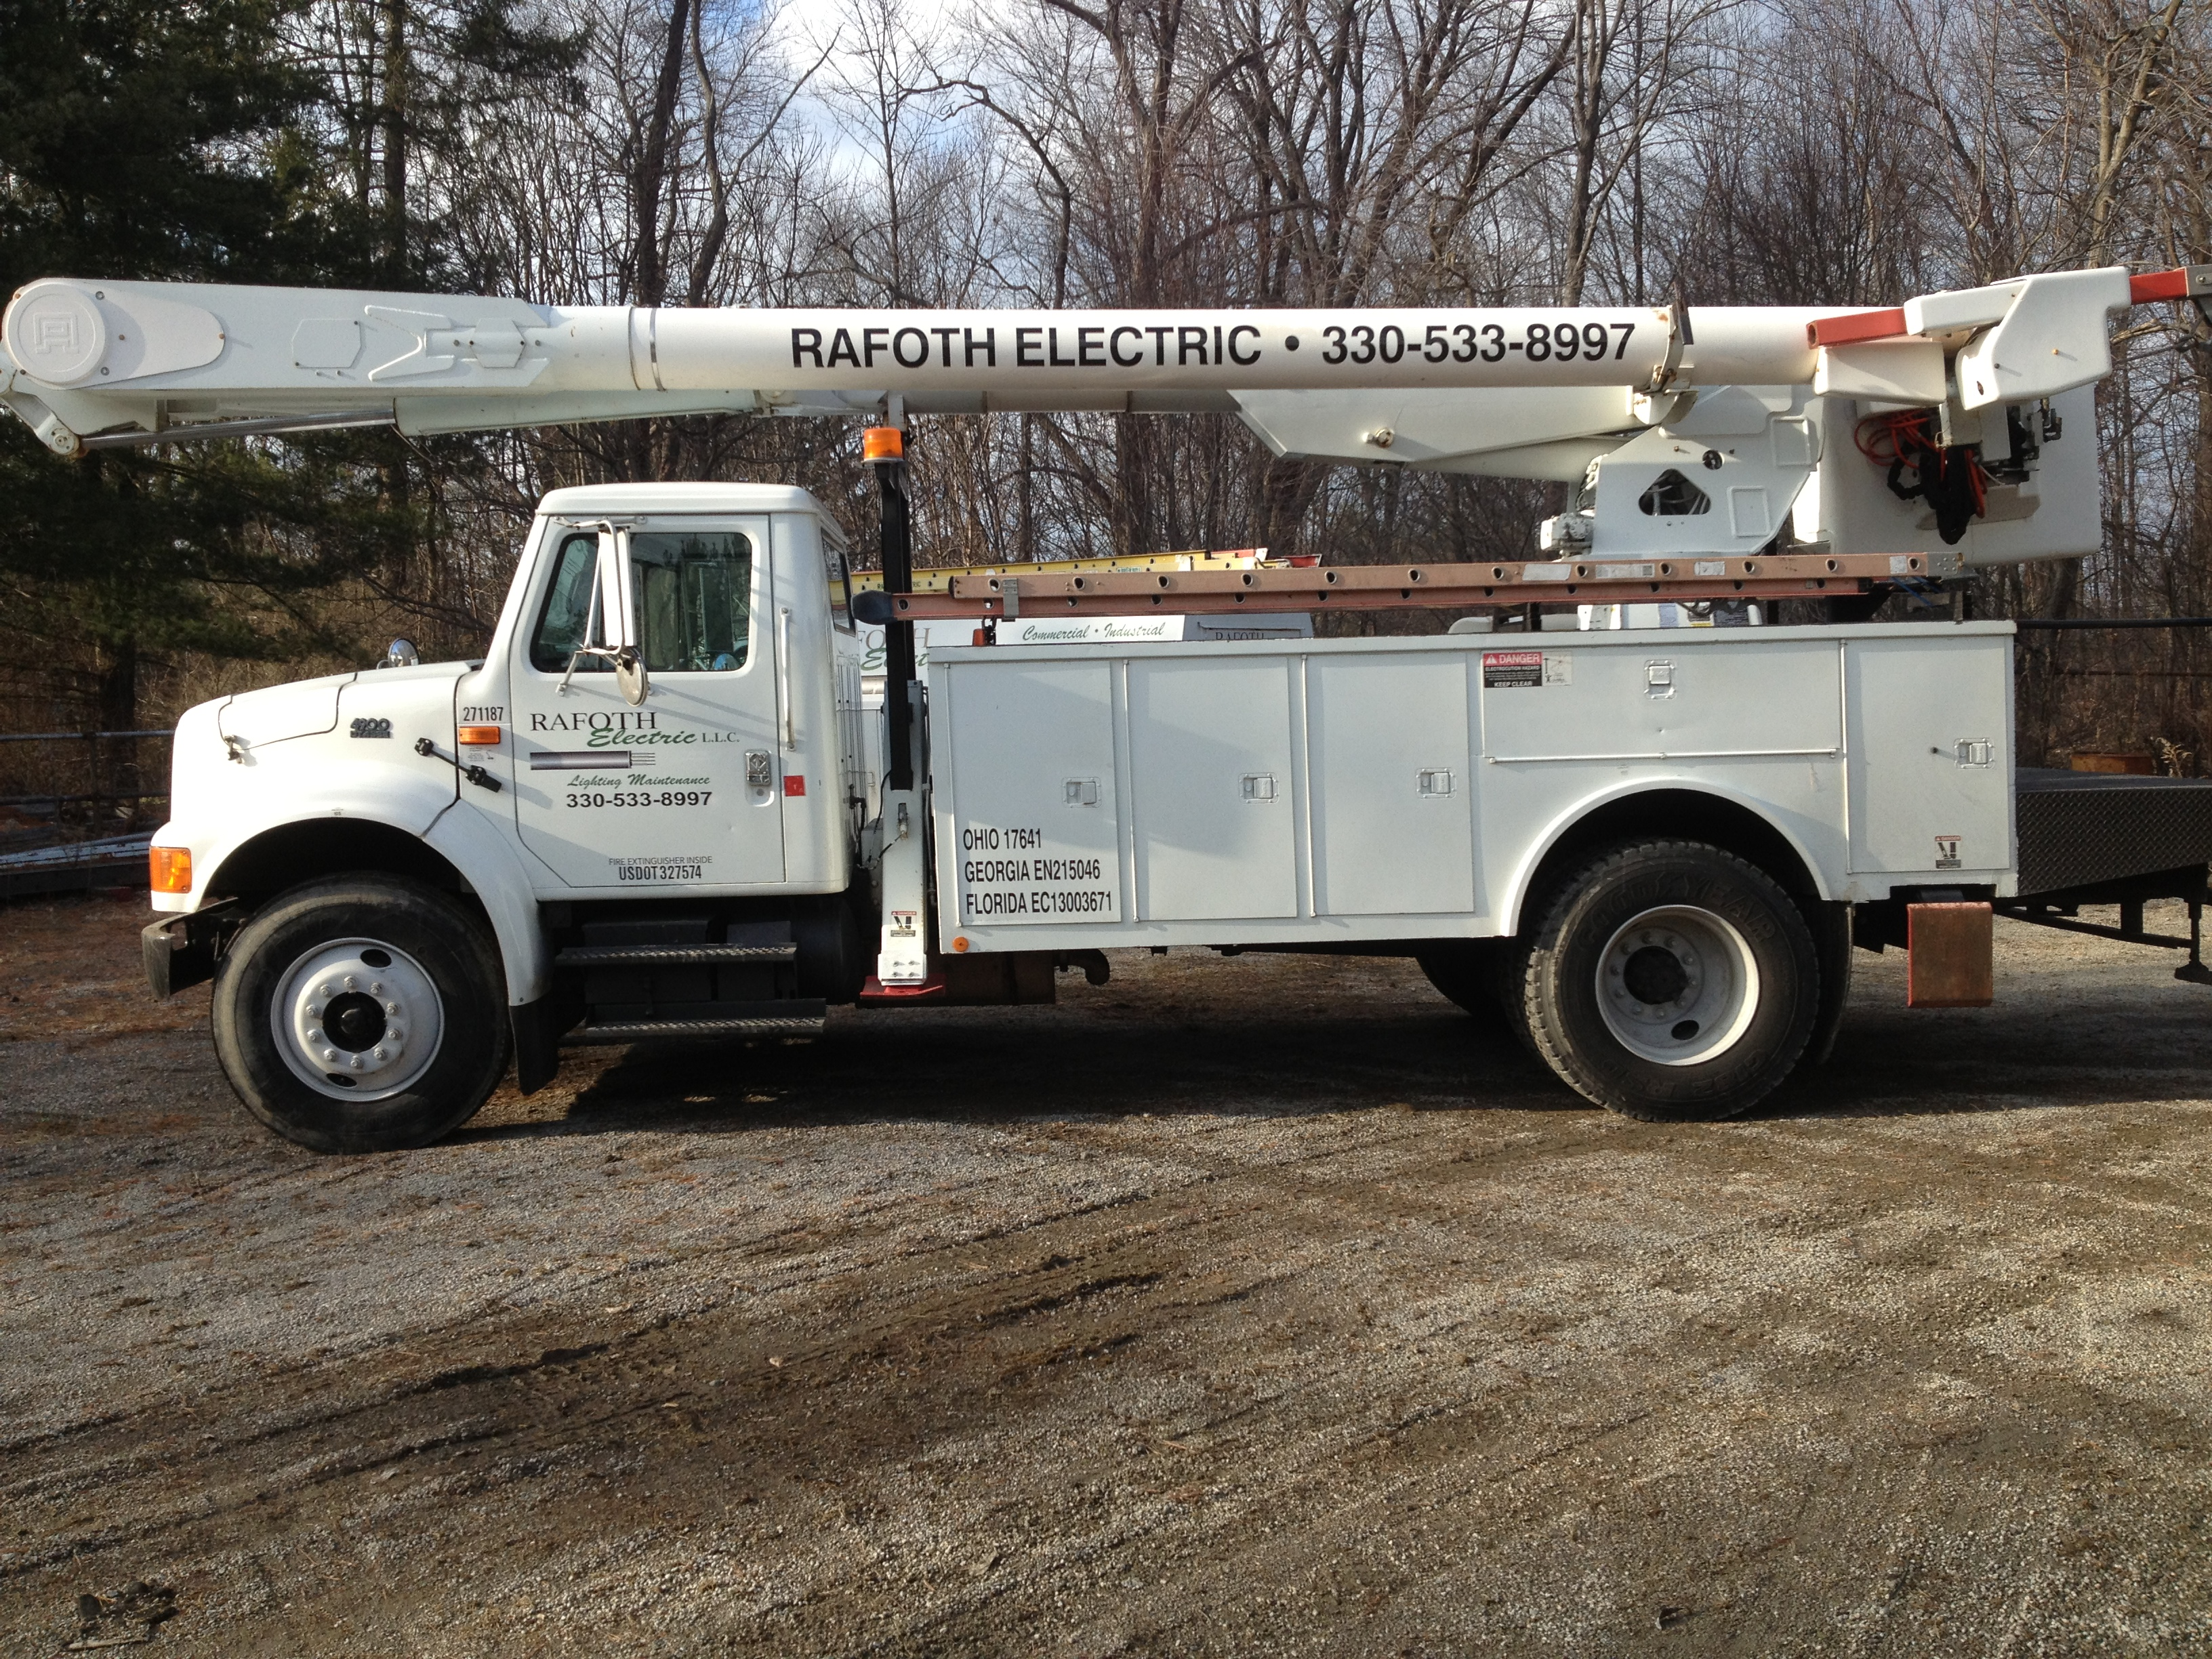 Rafoth Electric lighting maintenance and electrical service Canfield Ohio NECA-IBEW Electricians